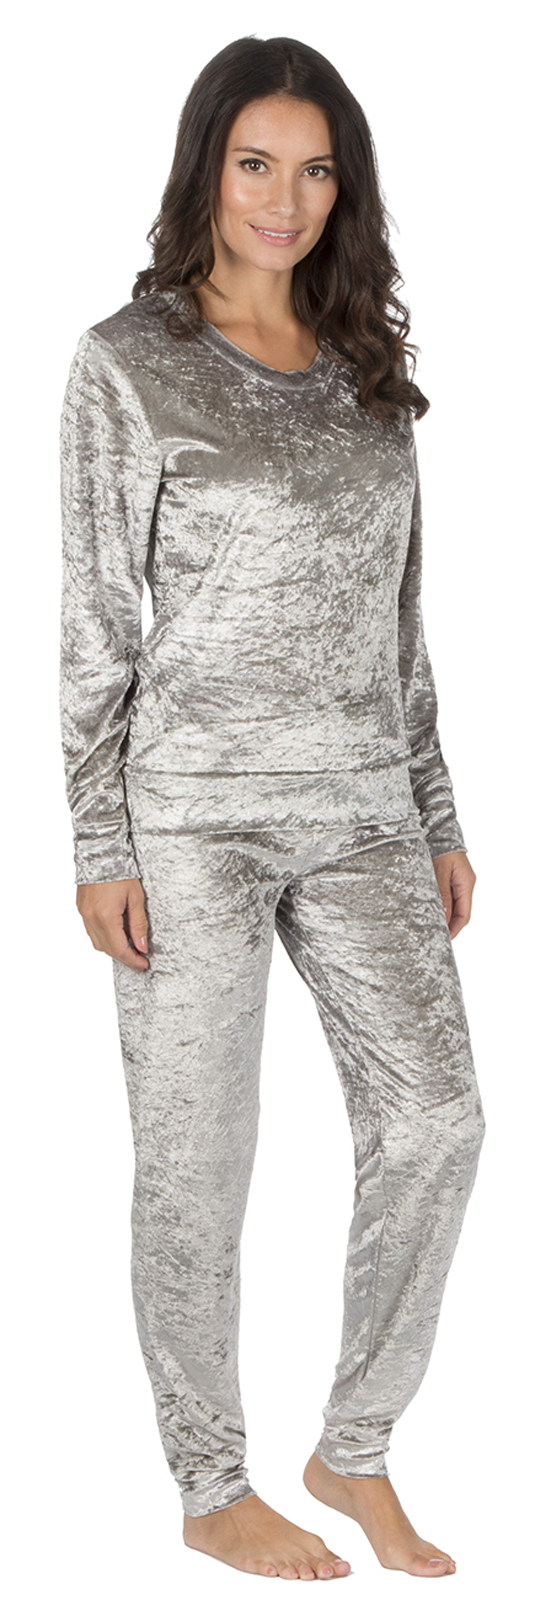 White Mark Women's Velour 2 Piece Set (3) Sold by Sears. $ - $ ToBeInStyle Comfy Soft Plush Velour Suit Hoodie Sweat Set Tracksuit Drawstring Lounge Pants. ToBeInStyle Comfy Soft Plush Velour Suit Hoodie Sweat Set Tracksuit Drawstring Lounge Pants. .